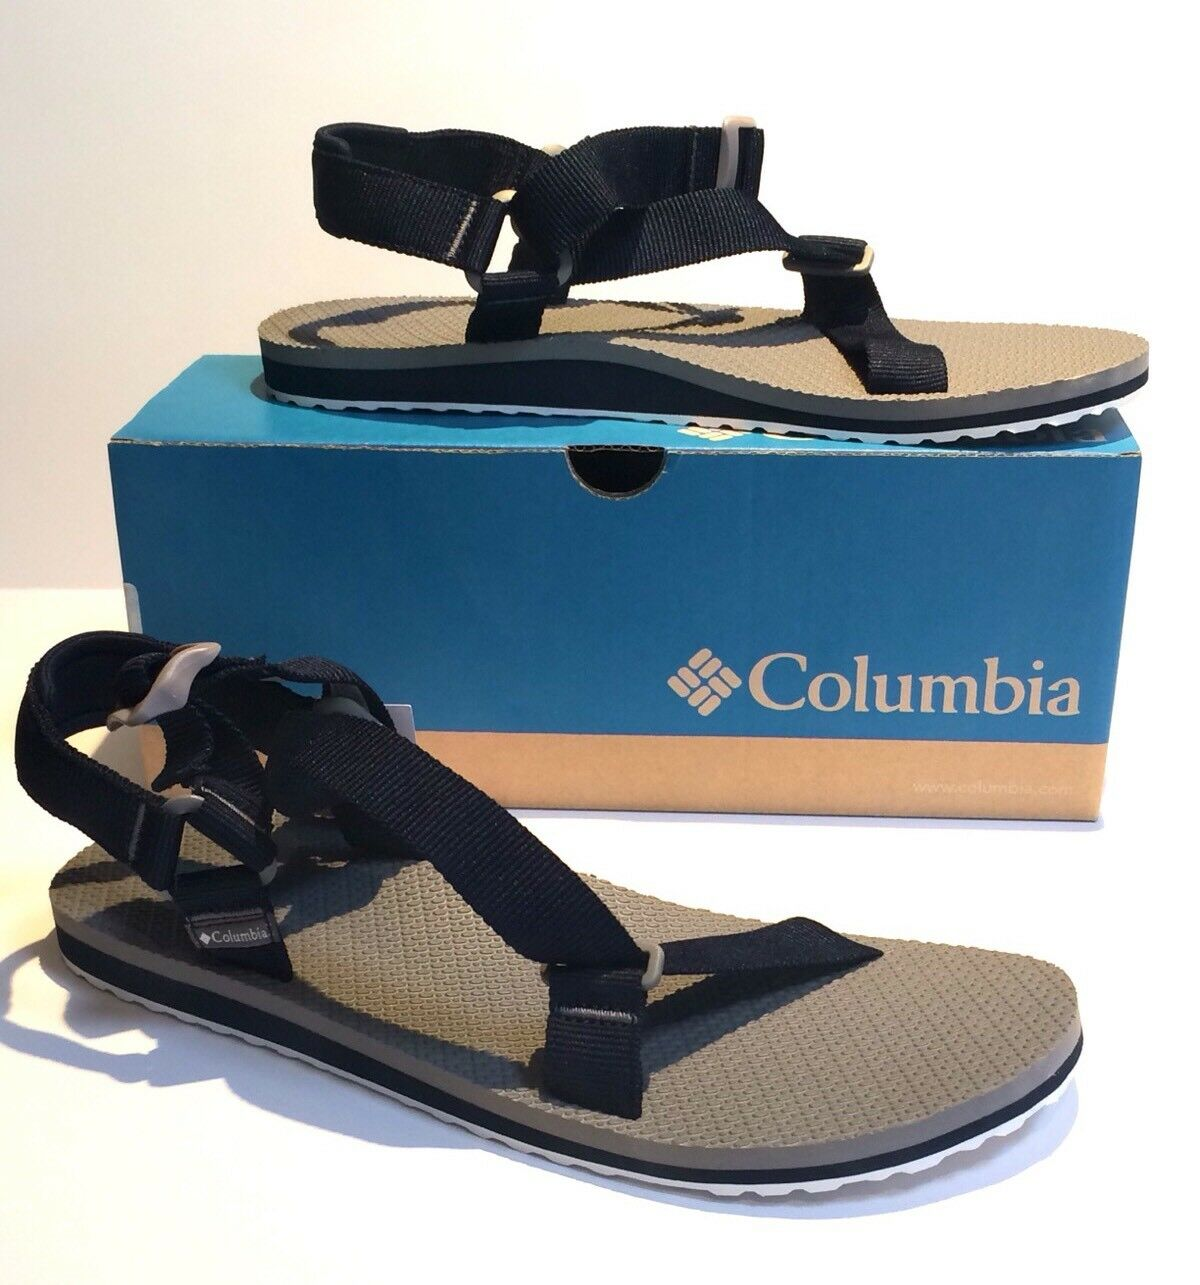 NEW! Columbia Sportswear Red River Sports Sandal Mens Size 12 Navy/Gray